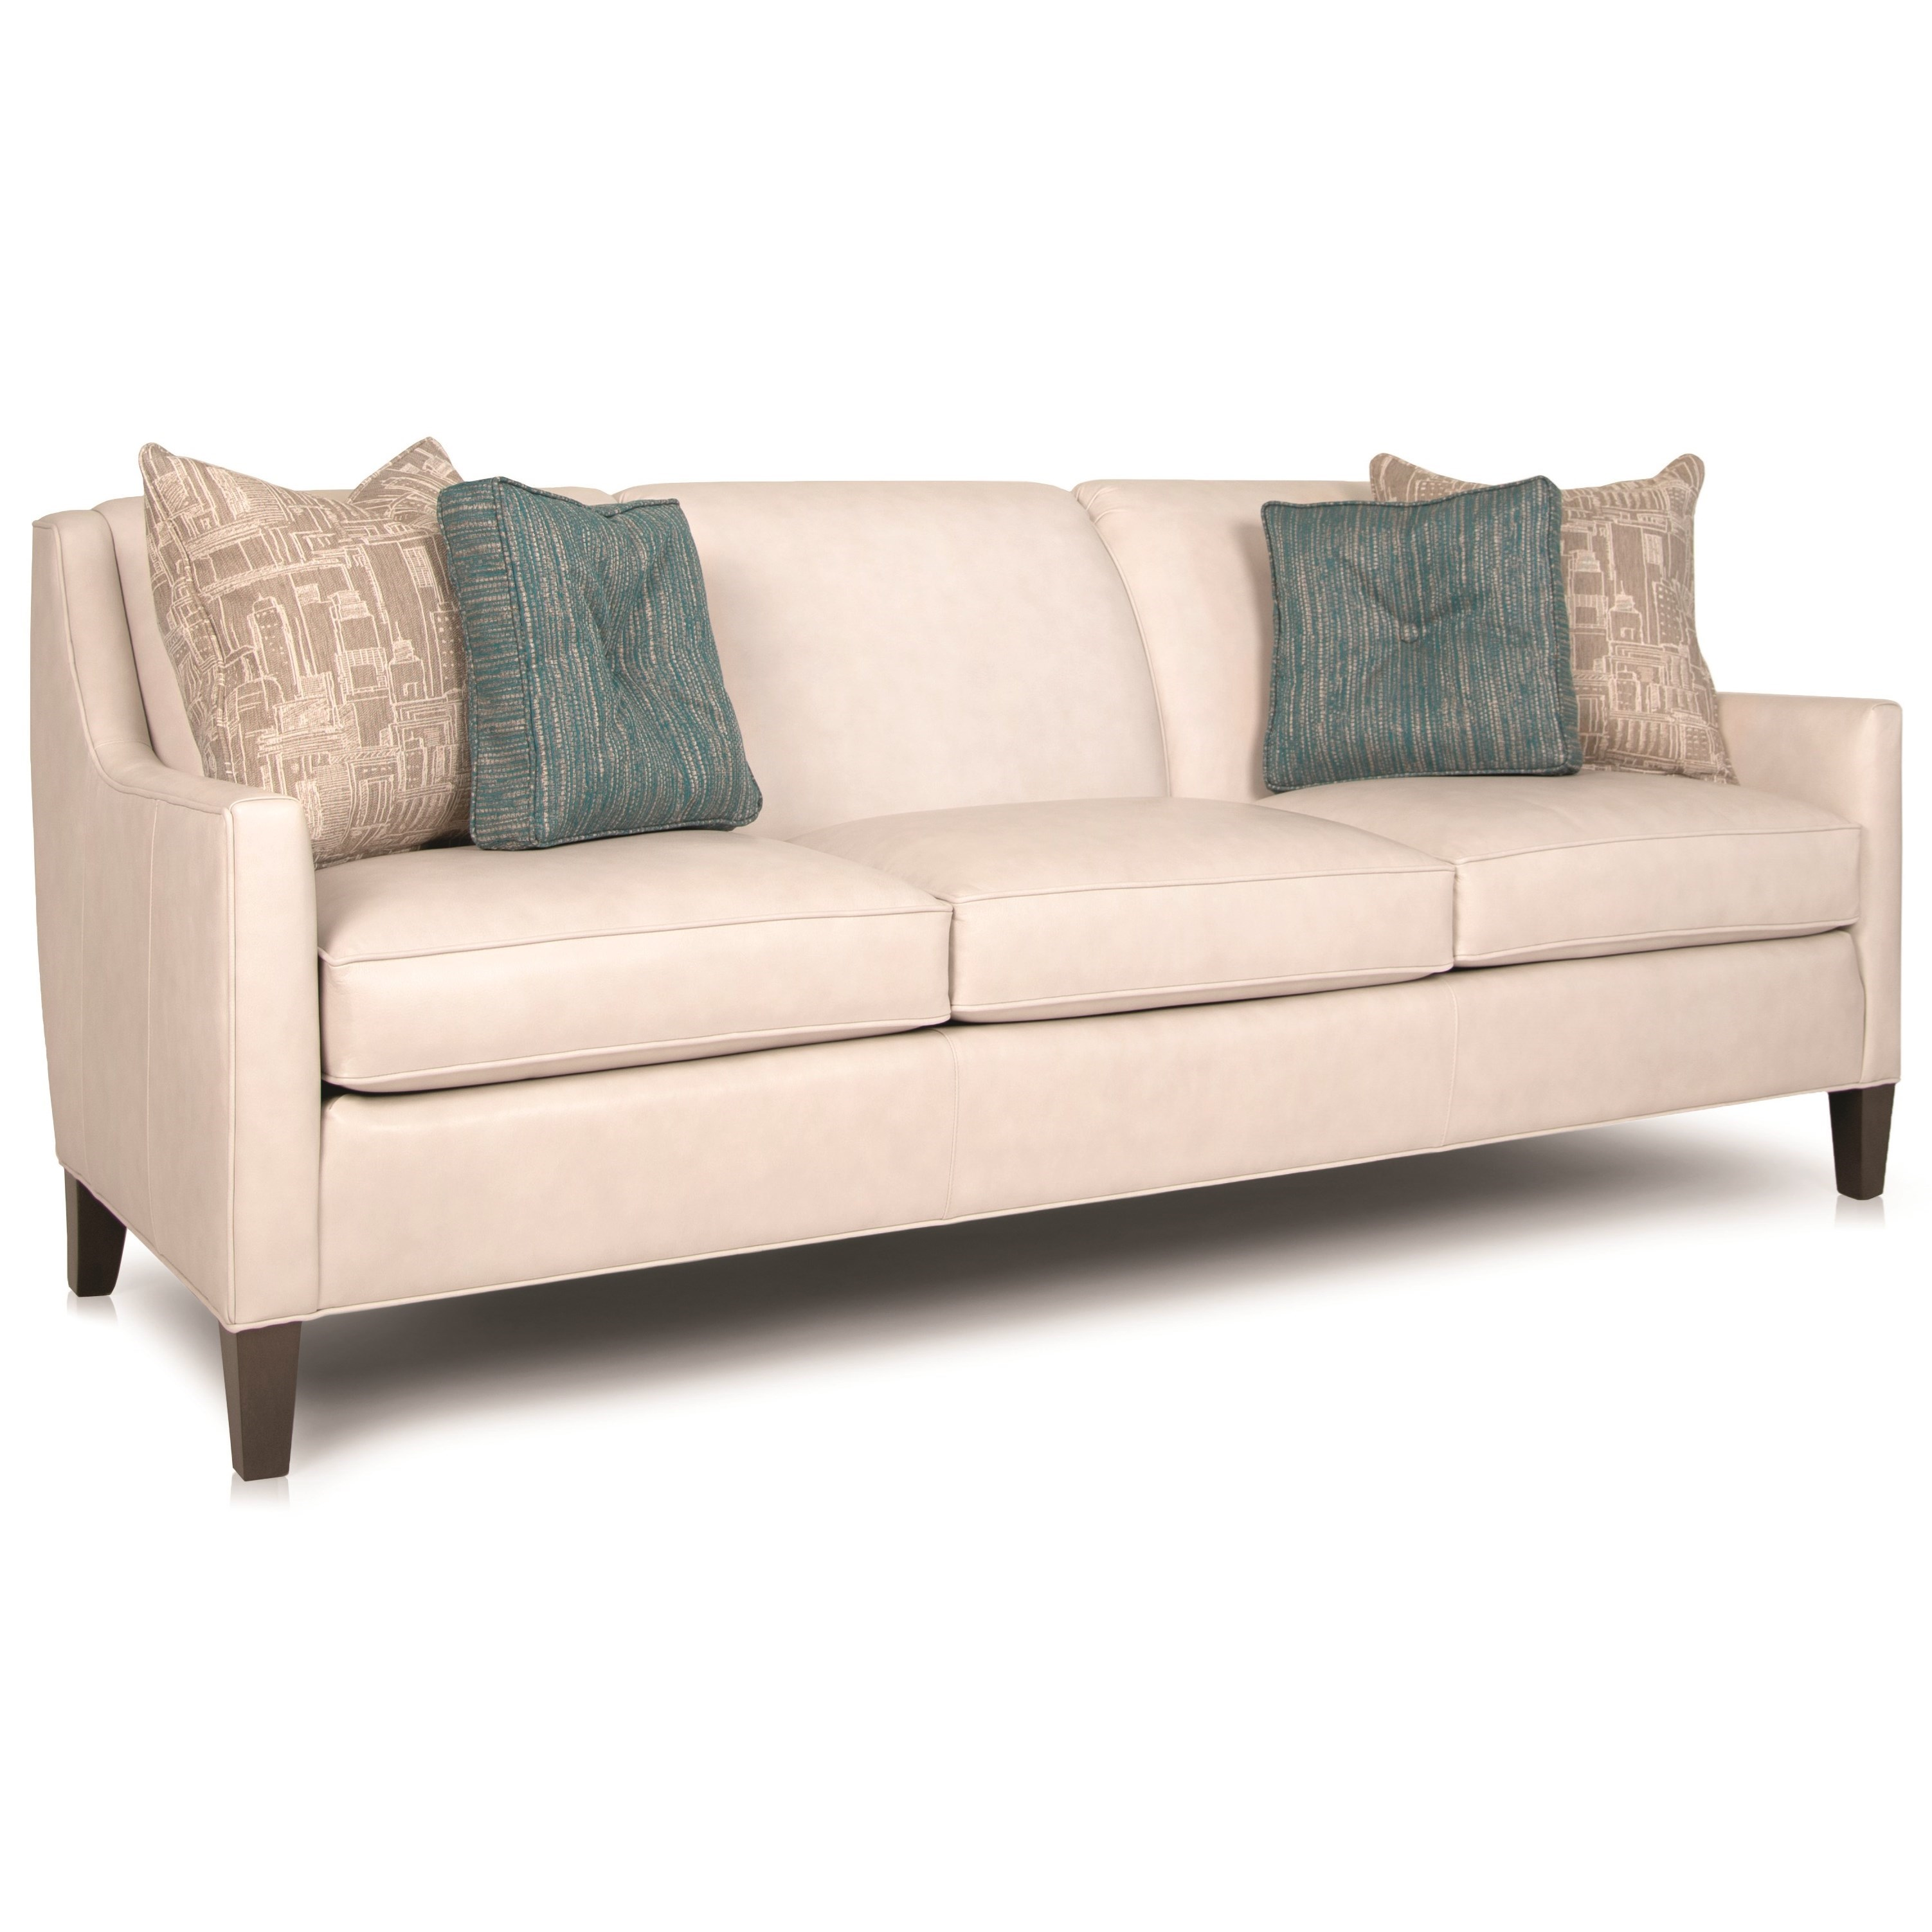 "248 74"" Sofa by Smith Brothers at Pilgrim Furniture City"